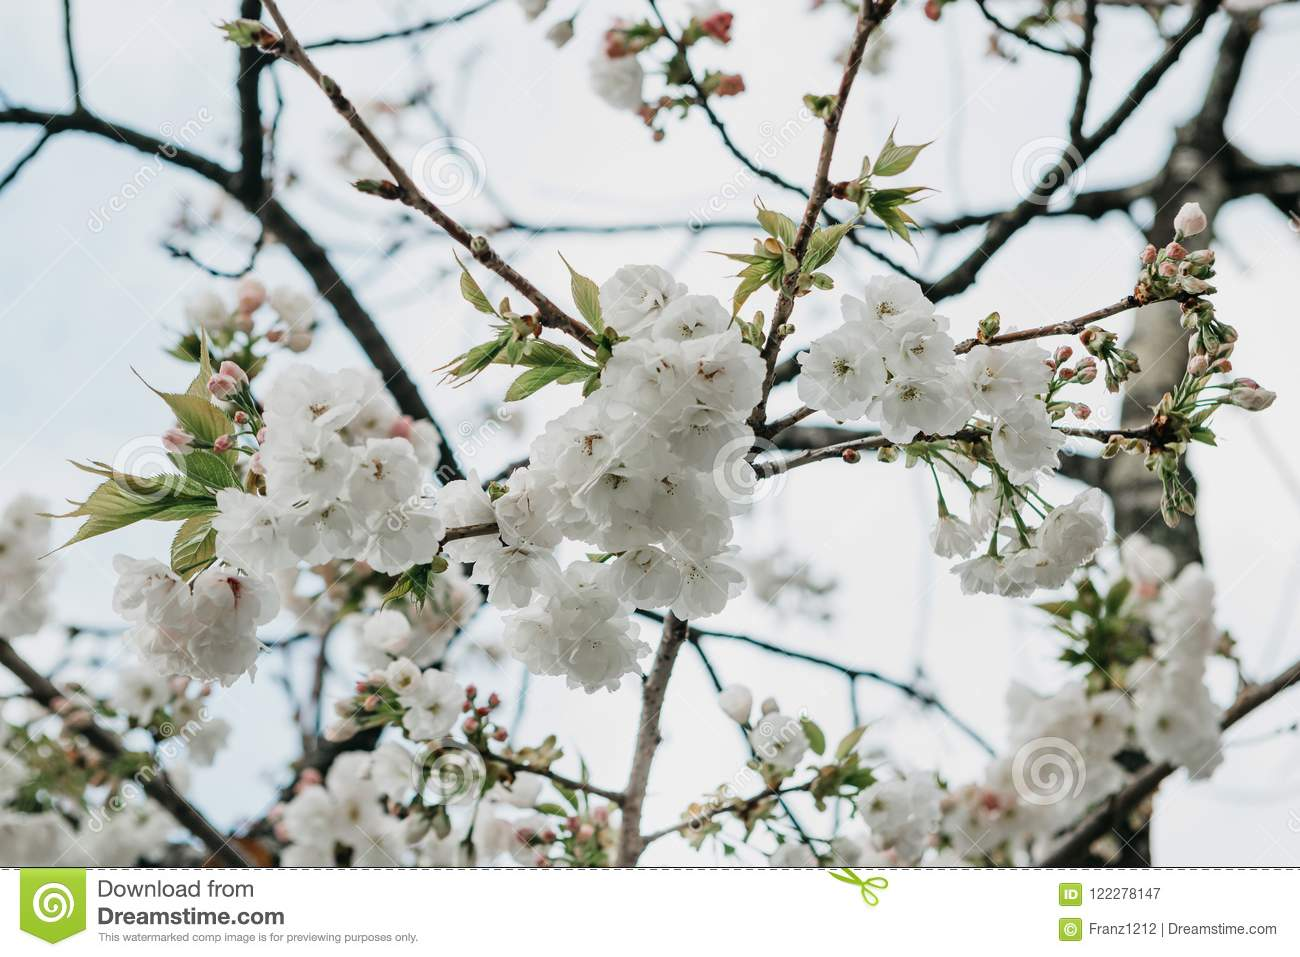 Branch Of A Tree With White Flowers Against The Sky Stock Image